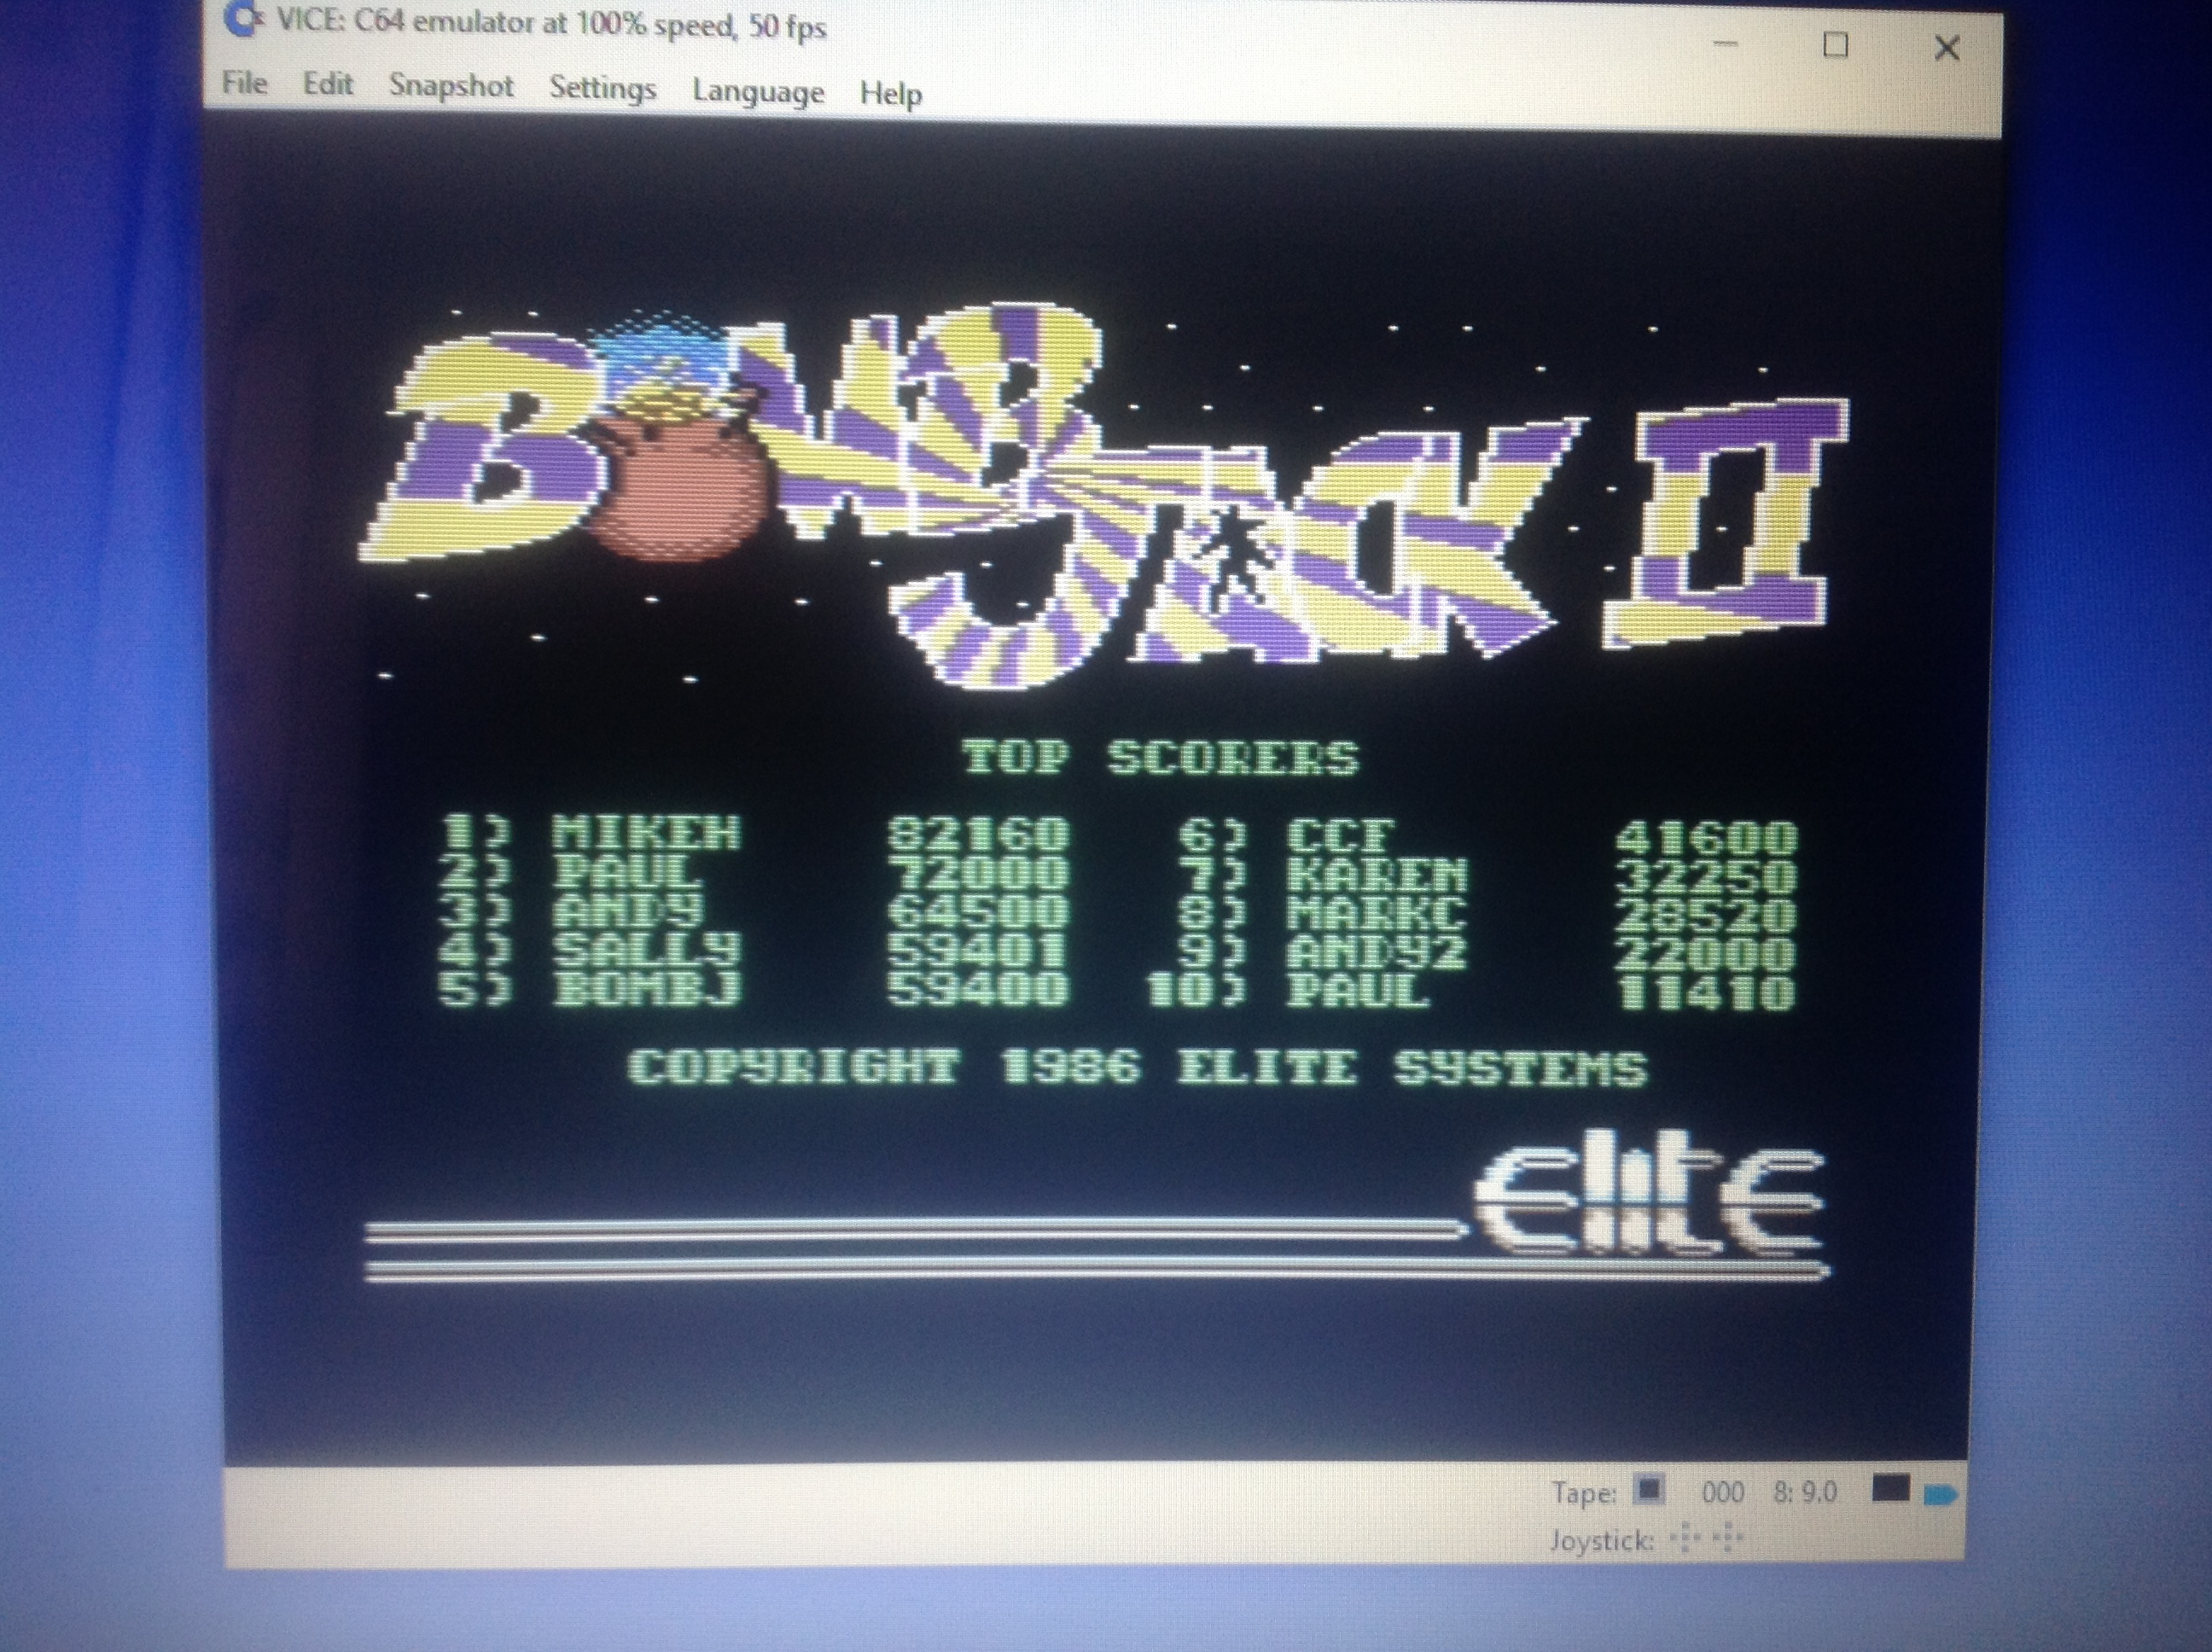 CoCoForest: Bomb Jack II (Commodore 64 Emulated) 41,600 points on 2018-01-13 05:51:29